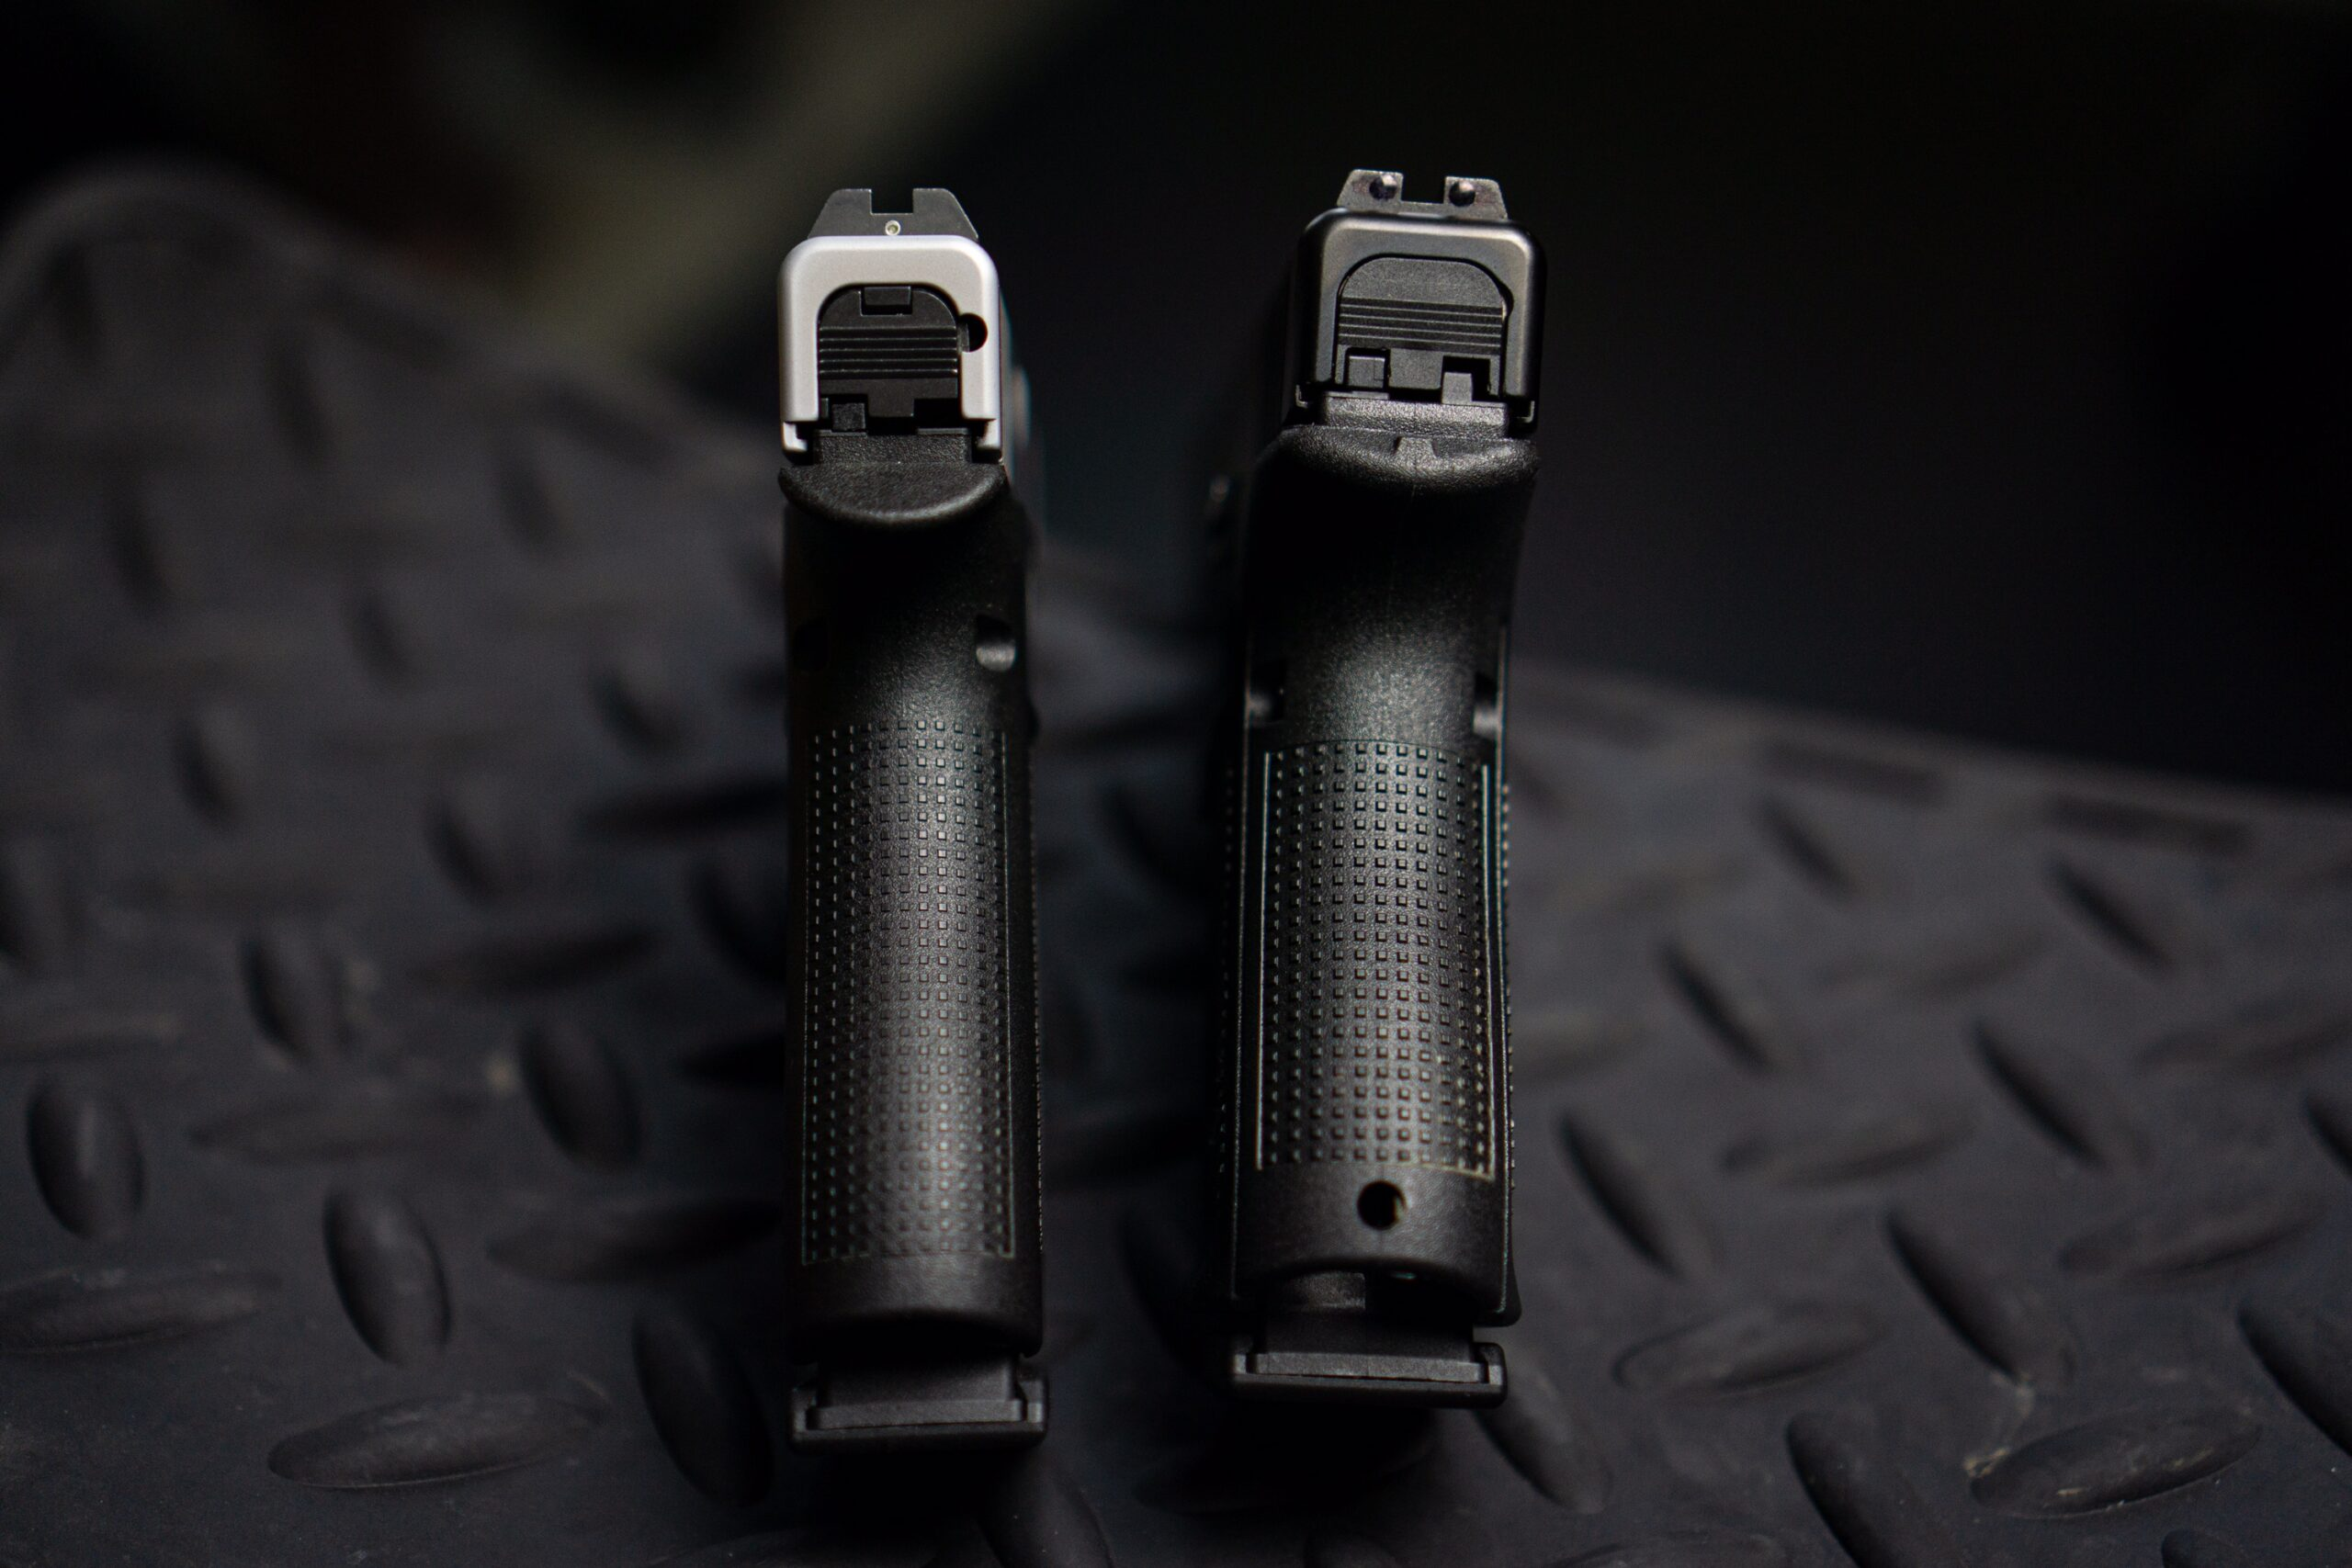 The Glock 48 vs Glock 19 Grip featured in an image showcasing that part of the pistols